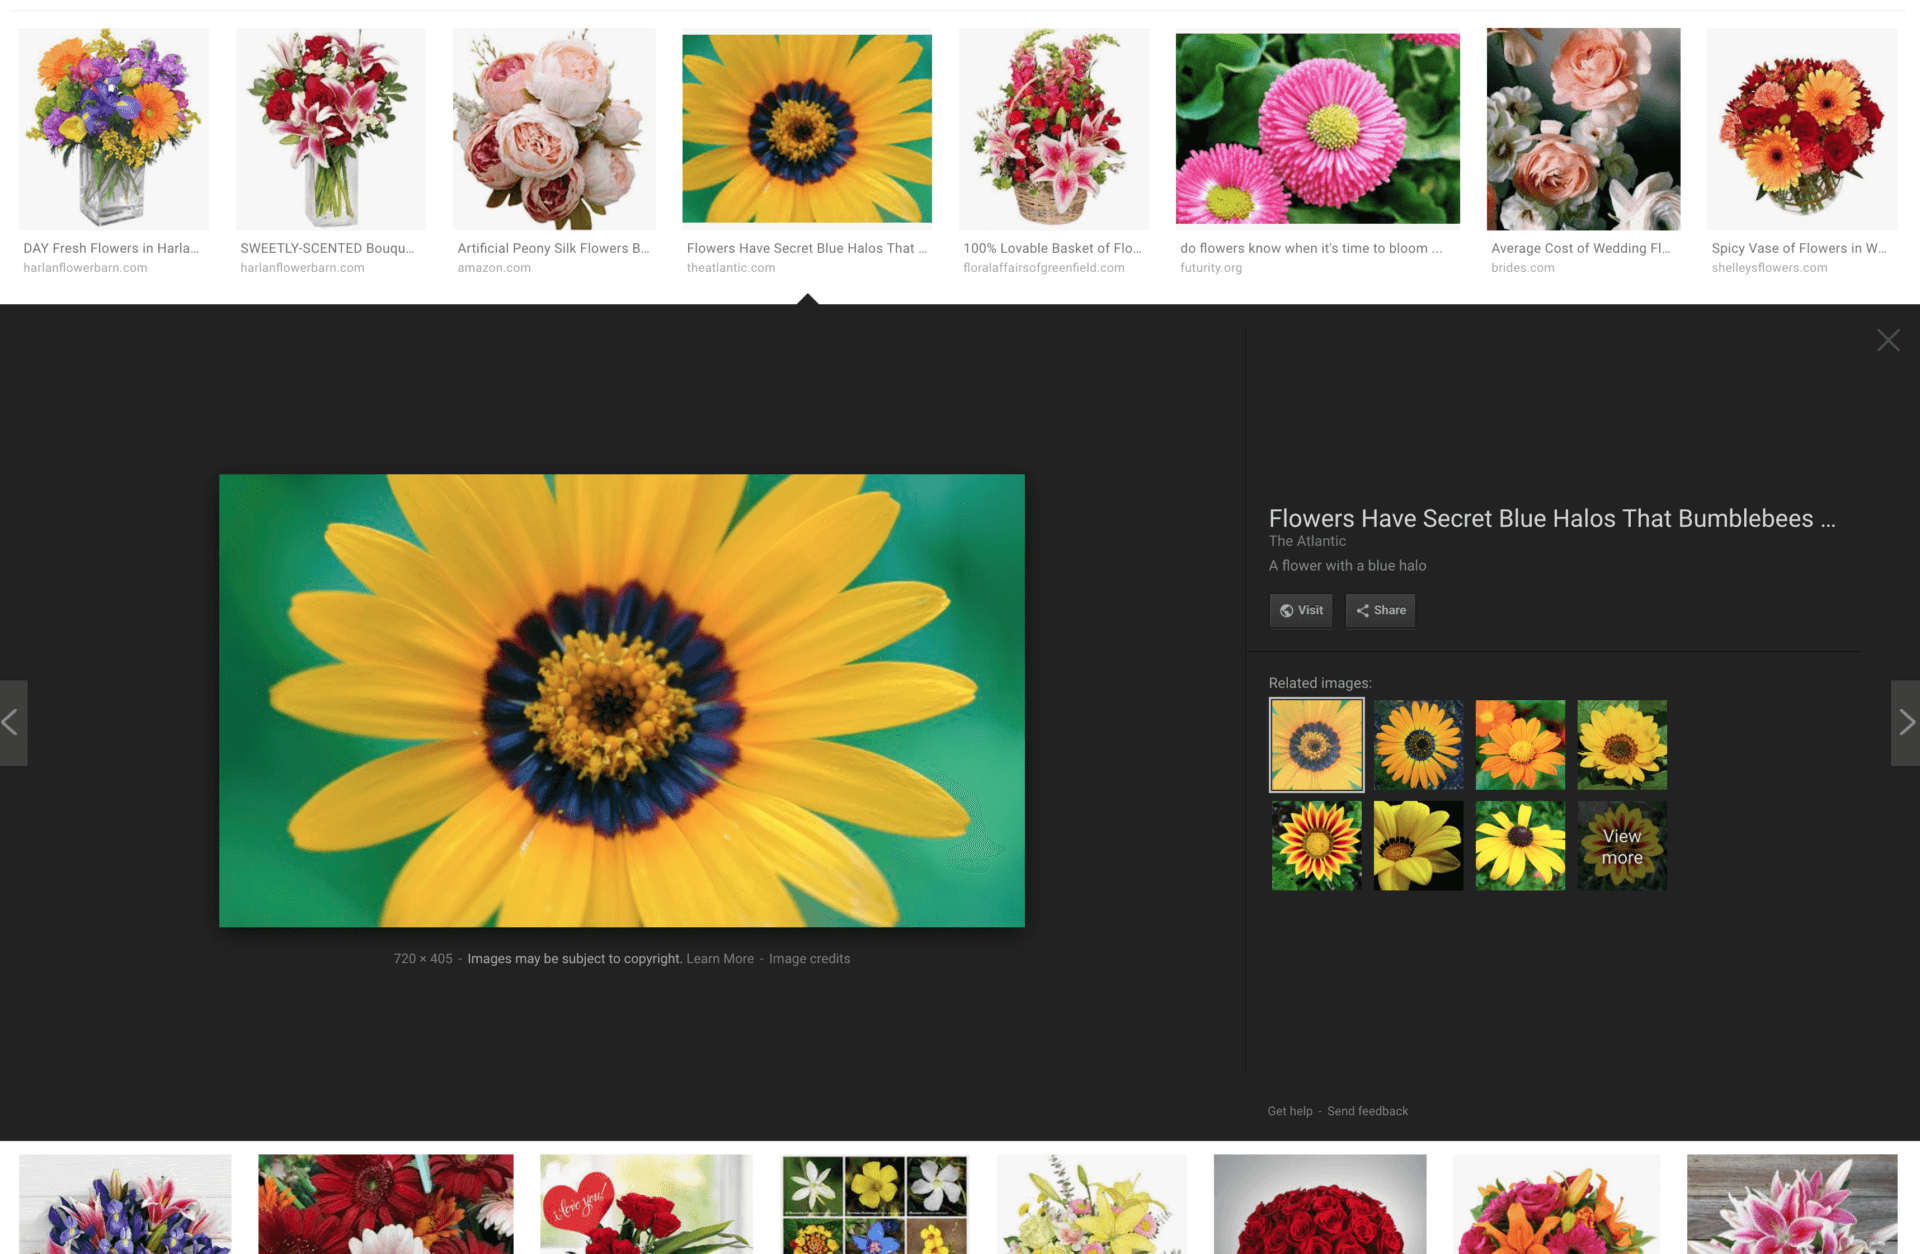 Google Image Search Rolling Out A New Design for Image Preview